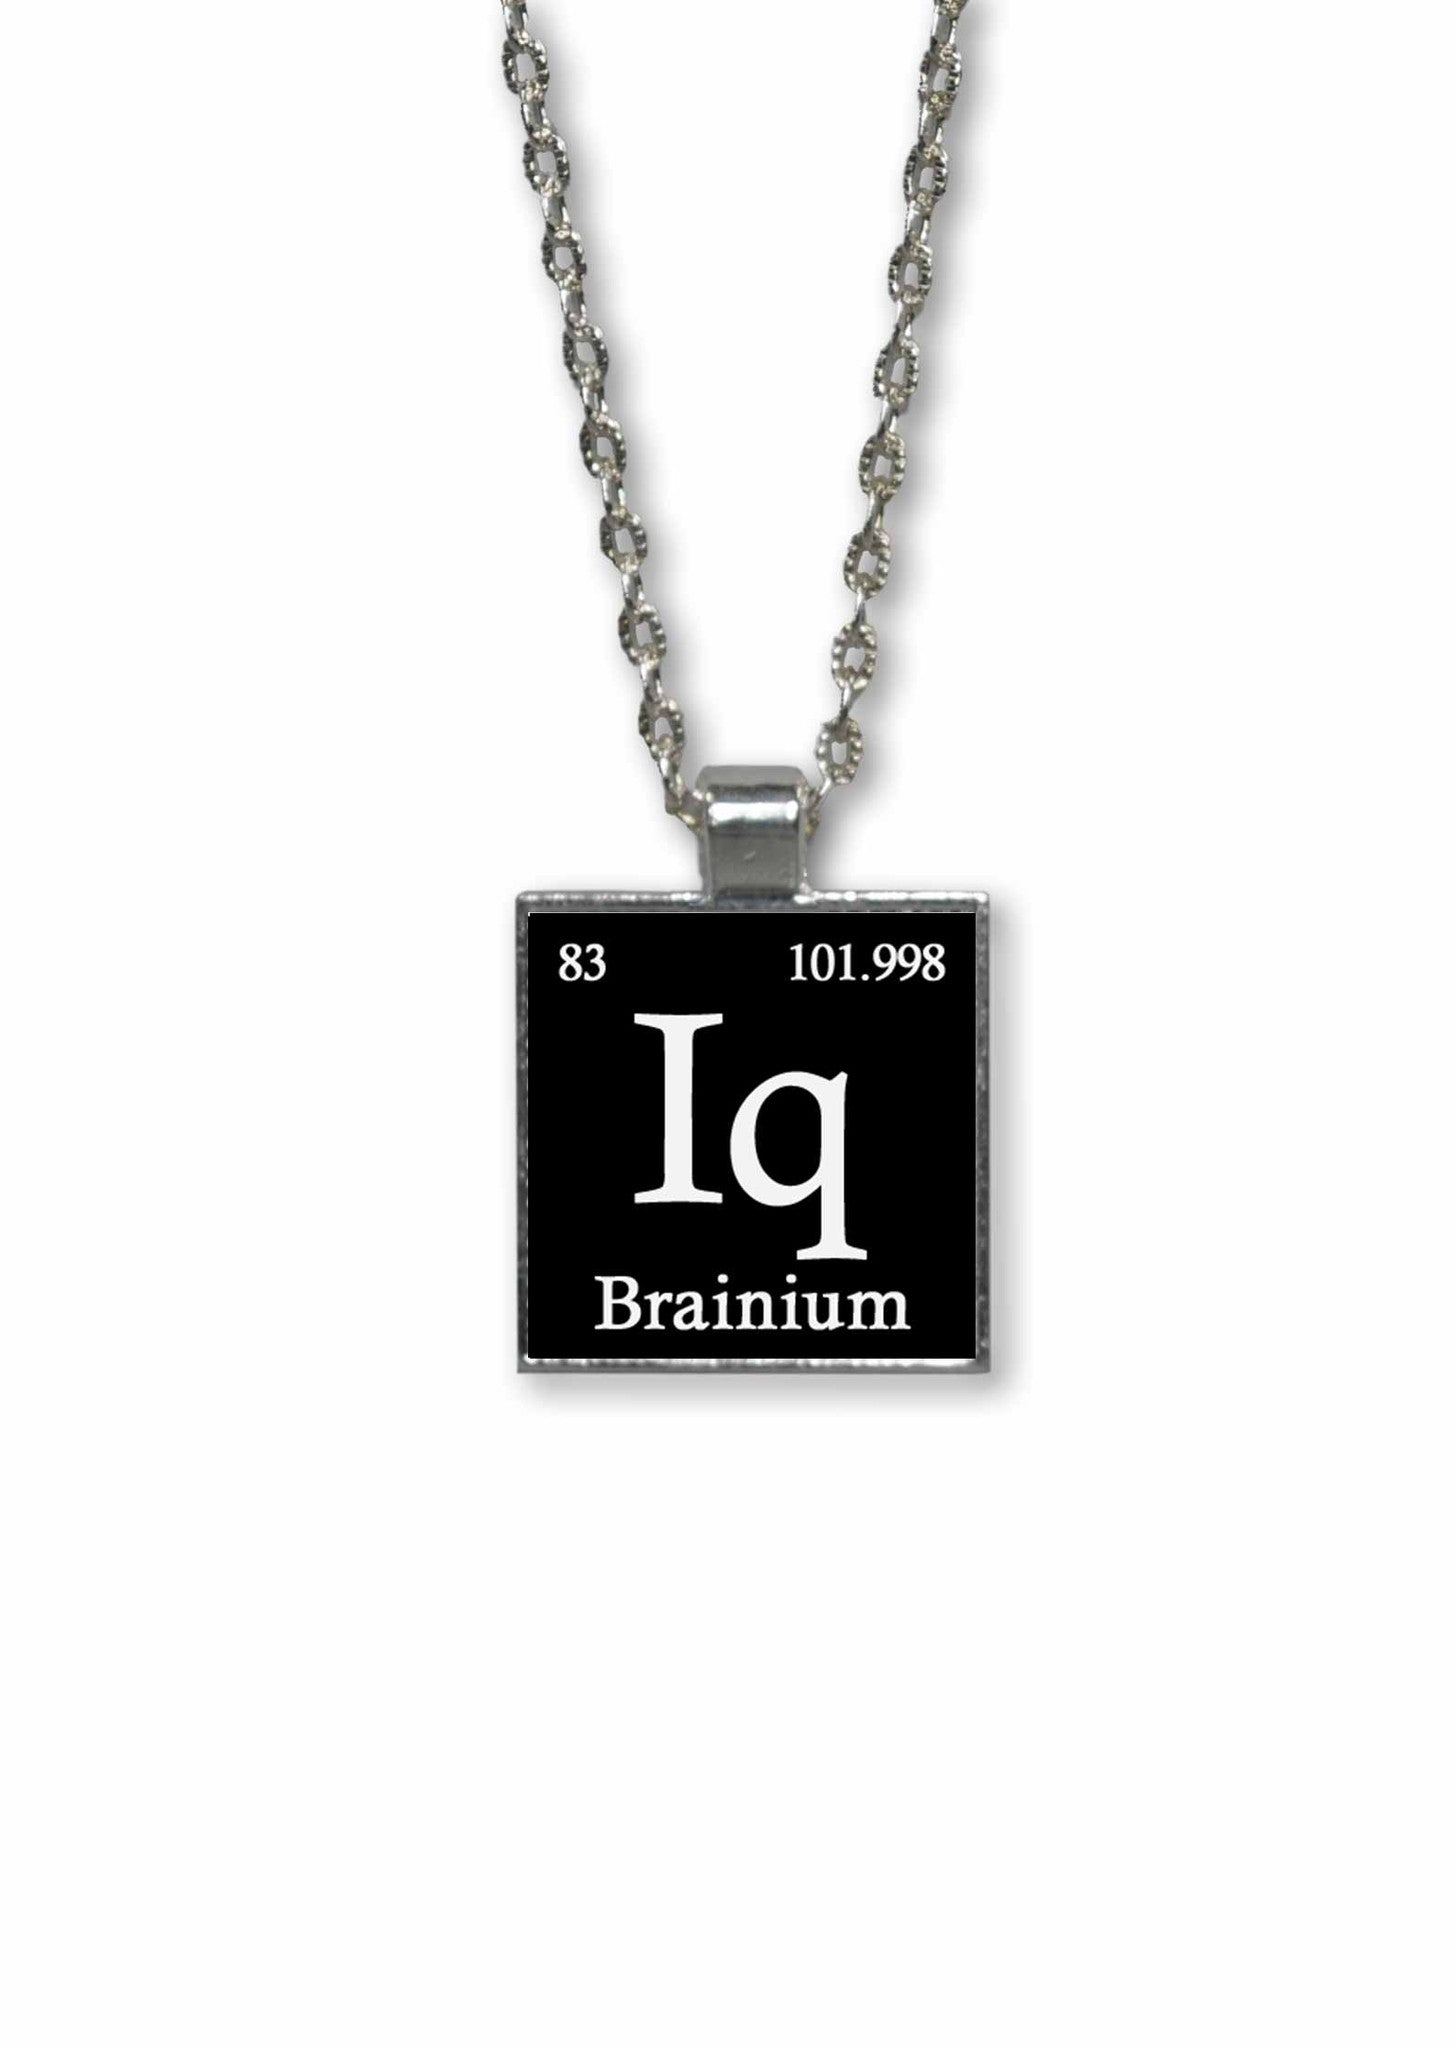 Made up periodic table elements tile iq brainium neurons not funny made up periodic table elements pendant necklace iq brainium urtaz